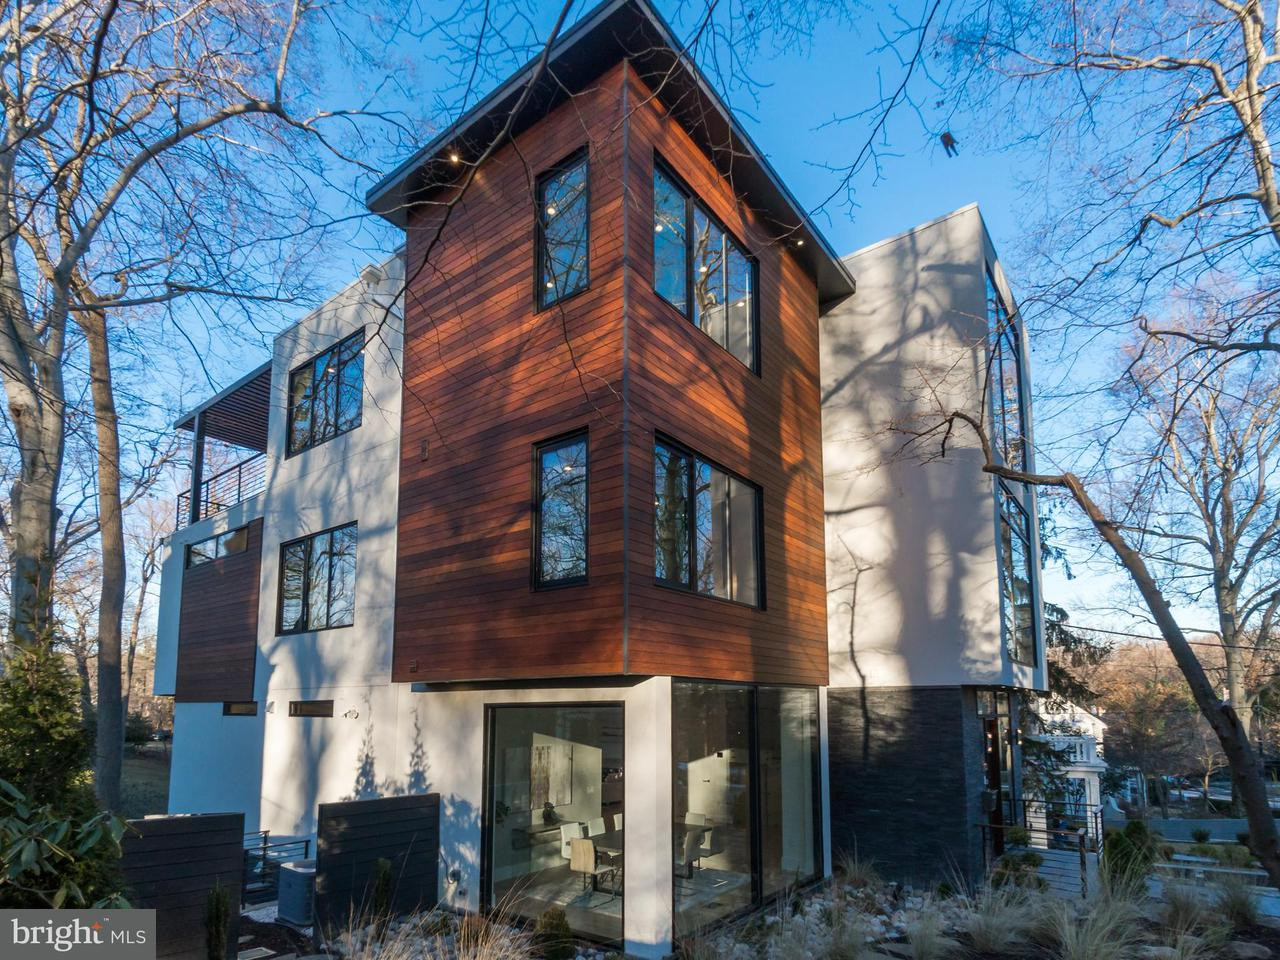 Single Family Home for Sale at 2803 Chesapeake St Nw 2803 Chesapeake St Nw Washington, District Of Columbia 20008 United States